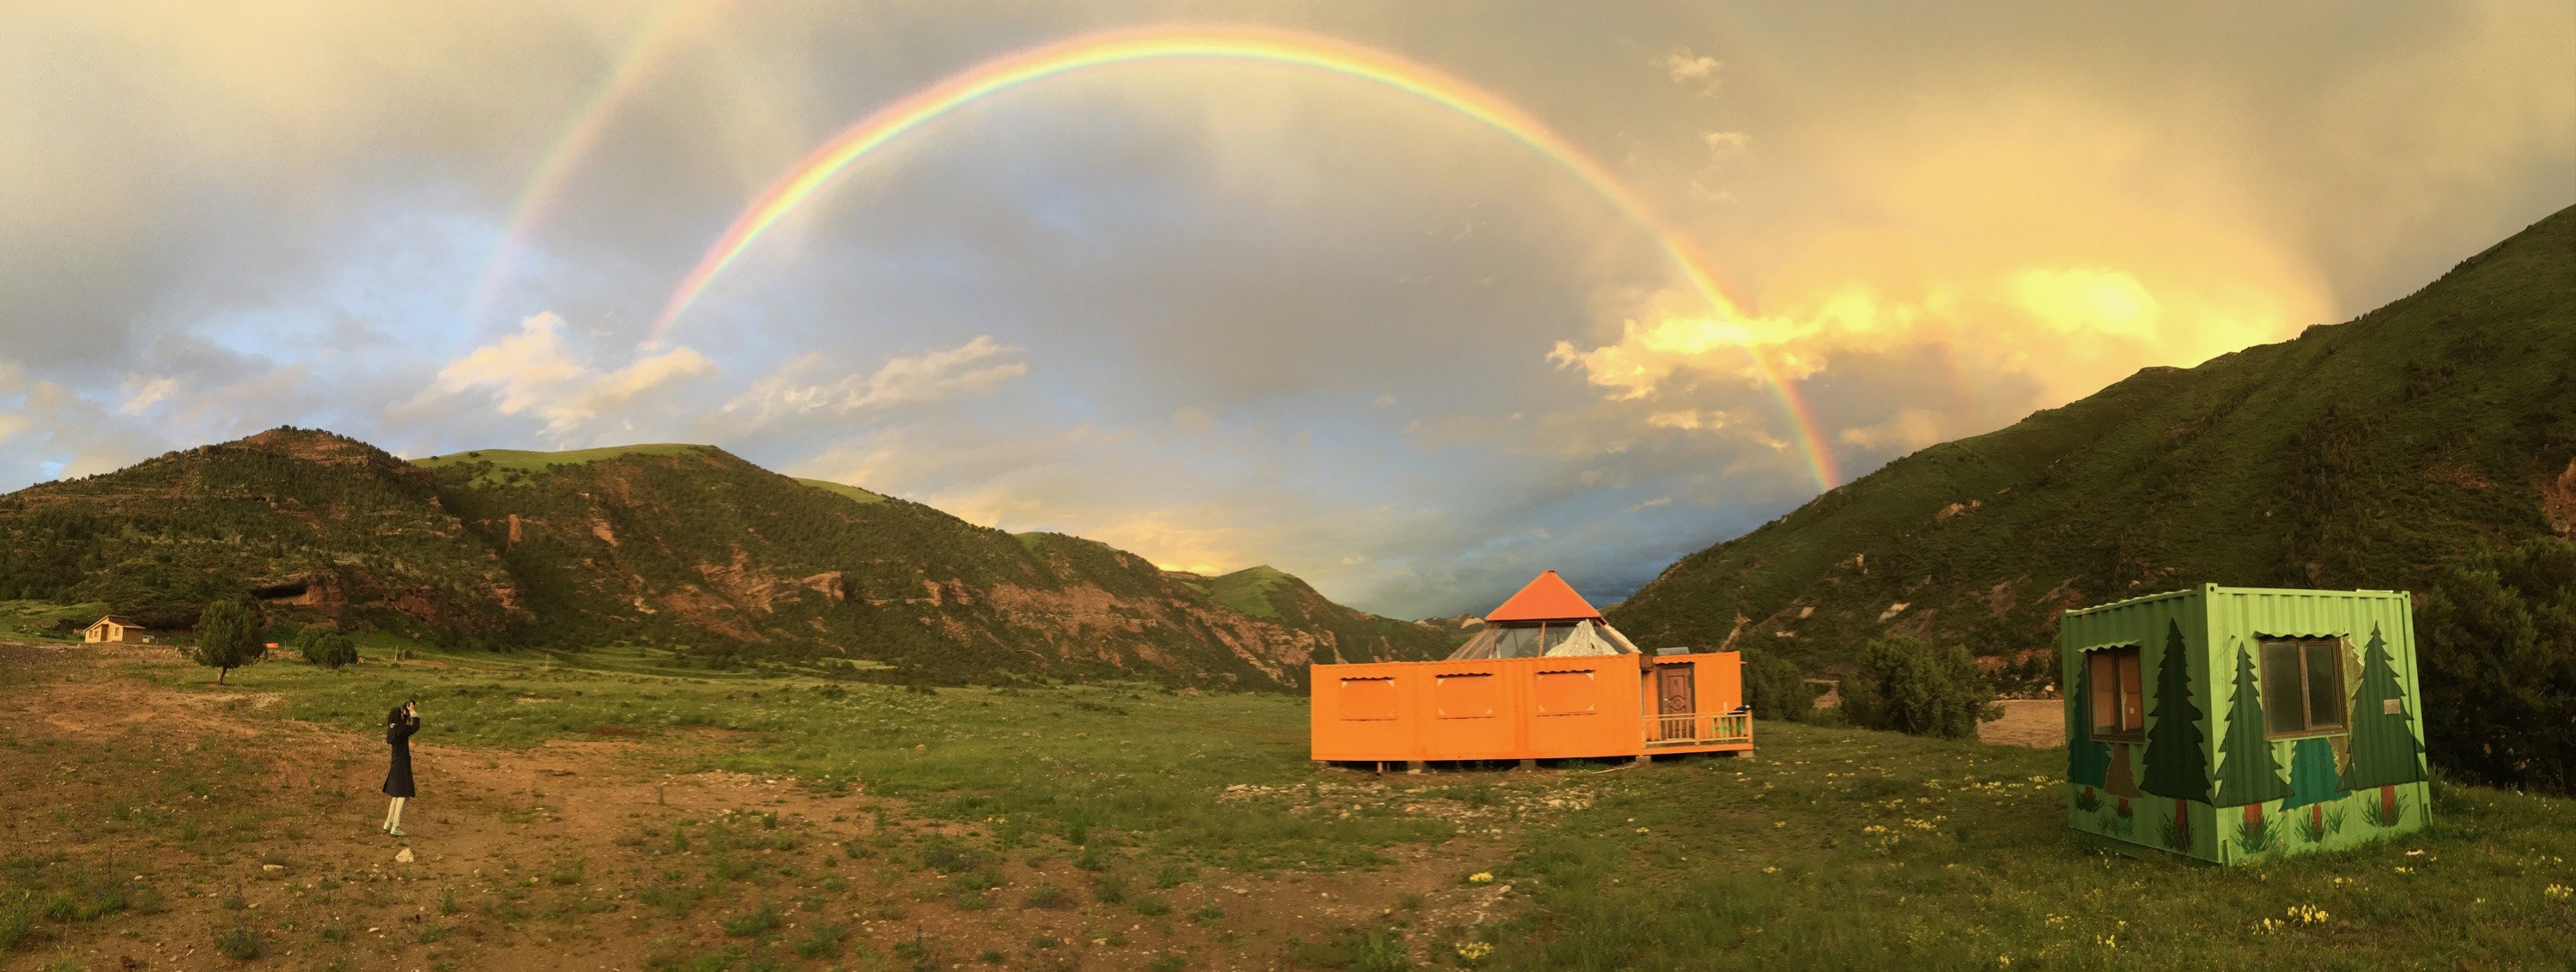 2018-07-19 rainbow over ShanShui workstation, Angsai